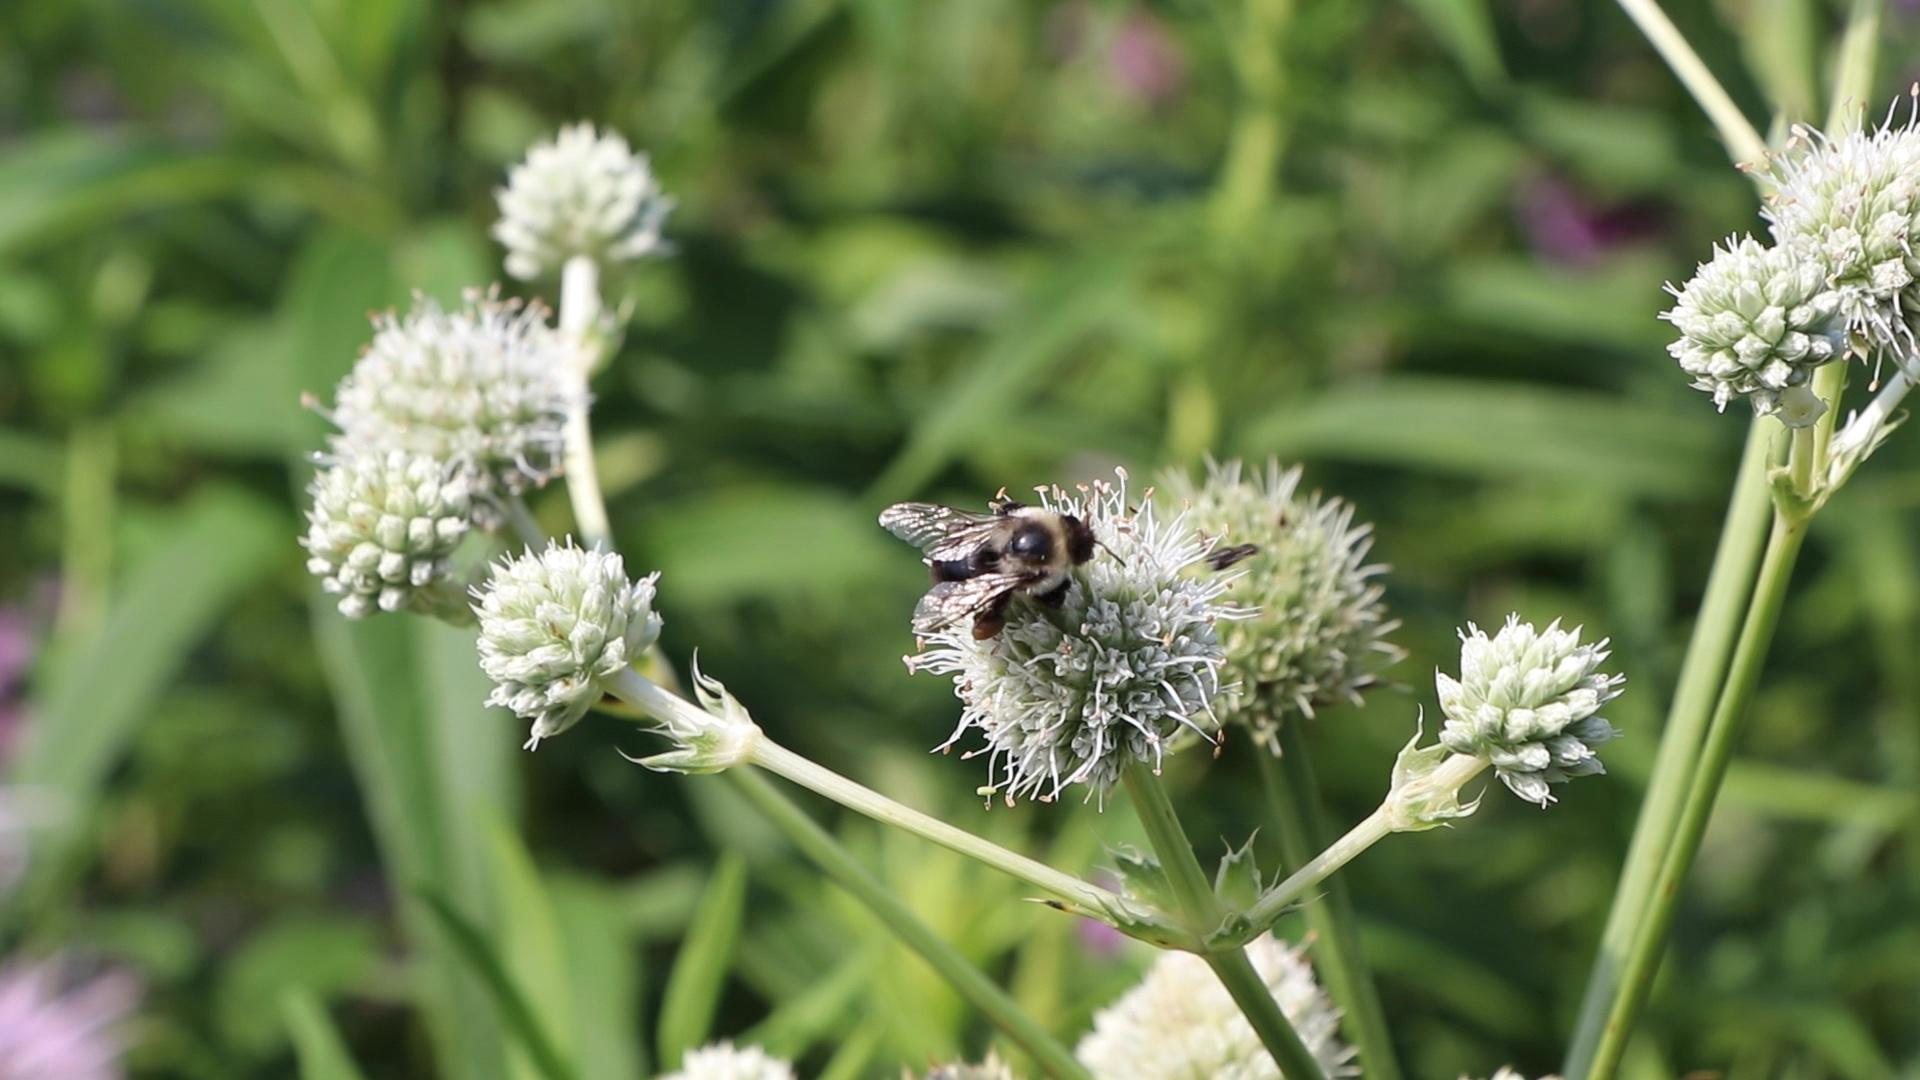 A bee lands on an eryngium yuccifolium, a prairie plant also known as  rattlesnake master. (Evan Garcia / WTTW News)